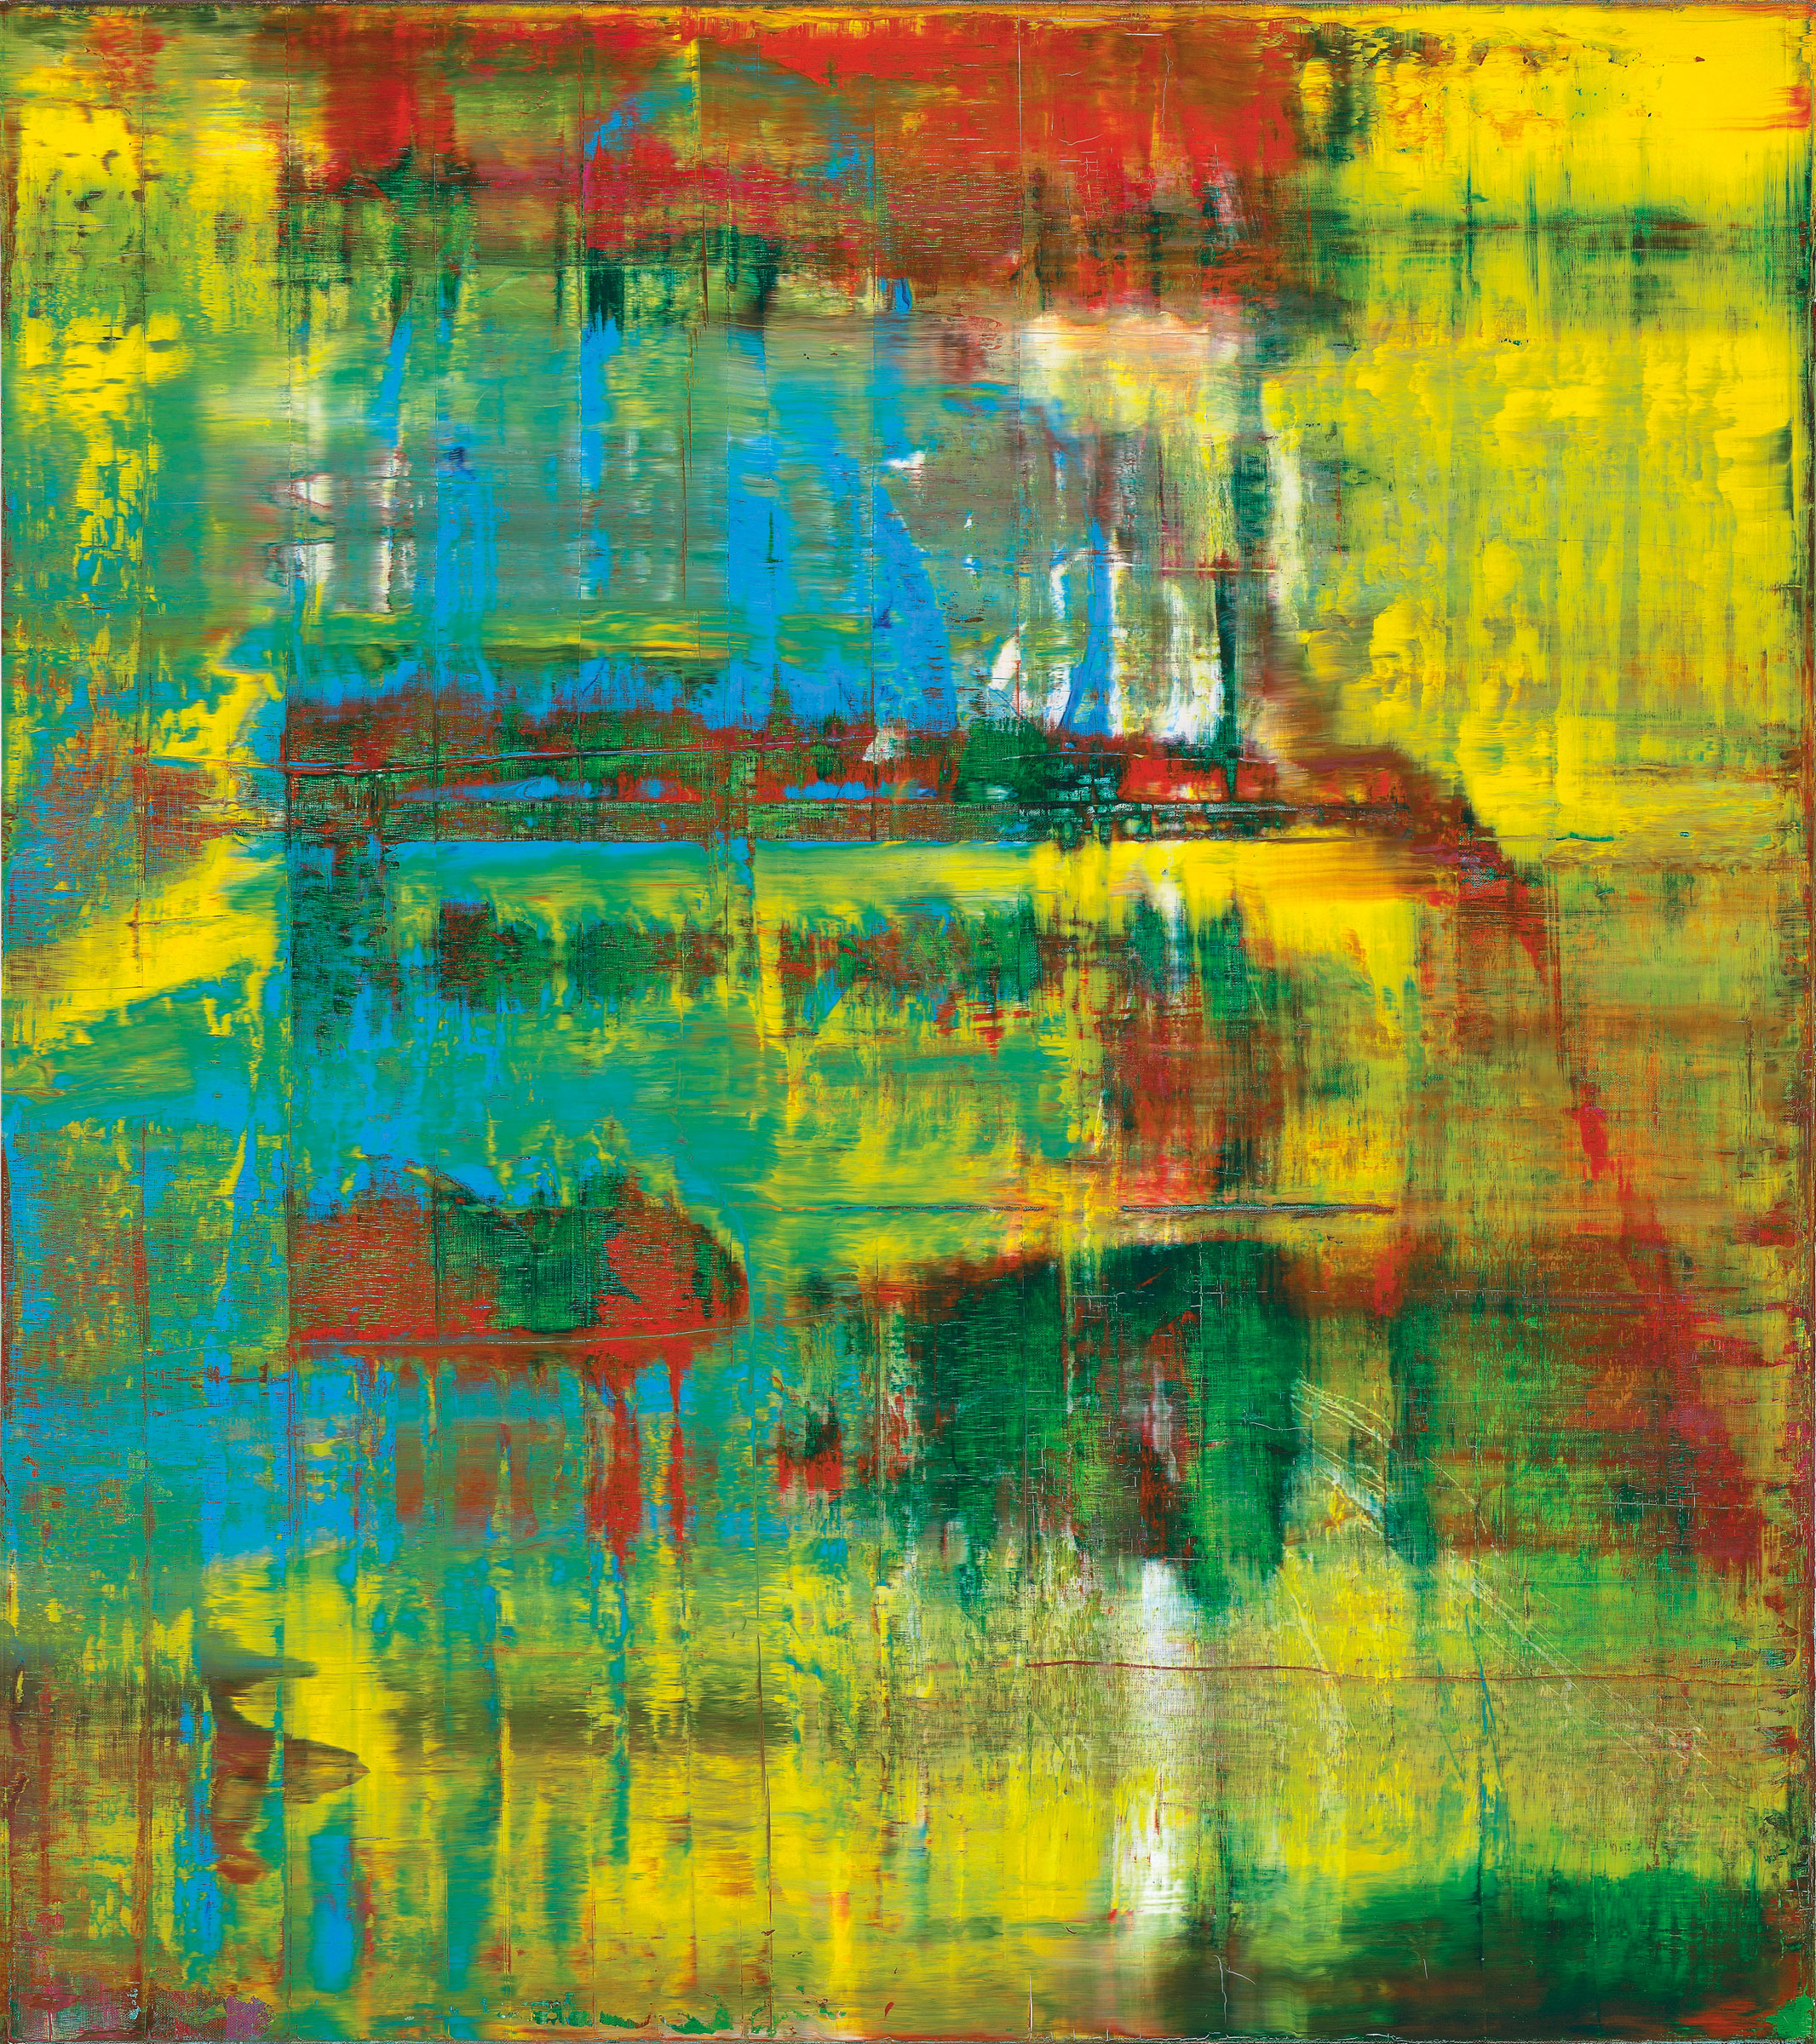 Art Bild Gerhard Richter Masterpiece From The Collection Of Eric Clapton